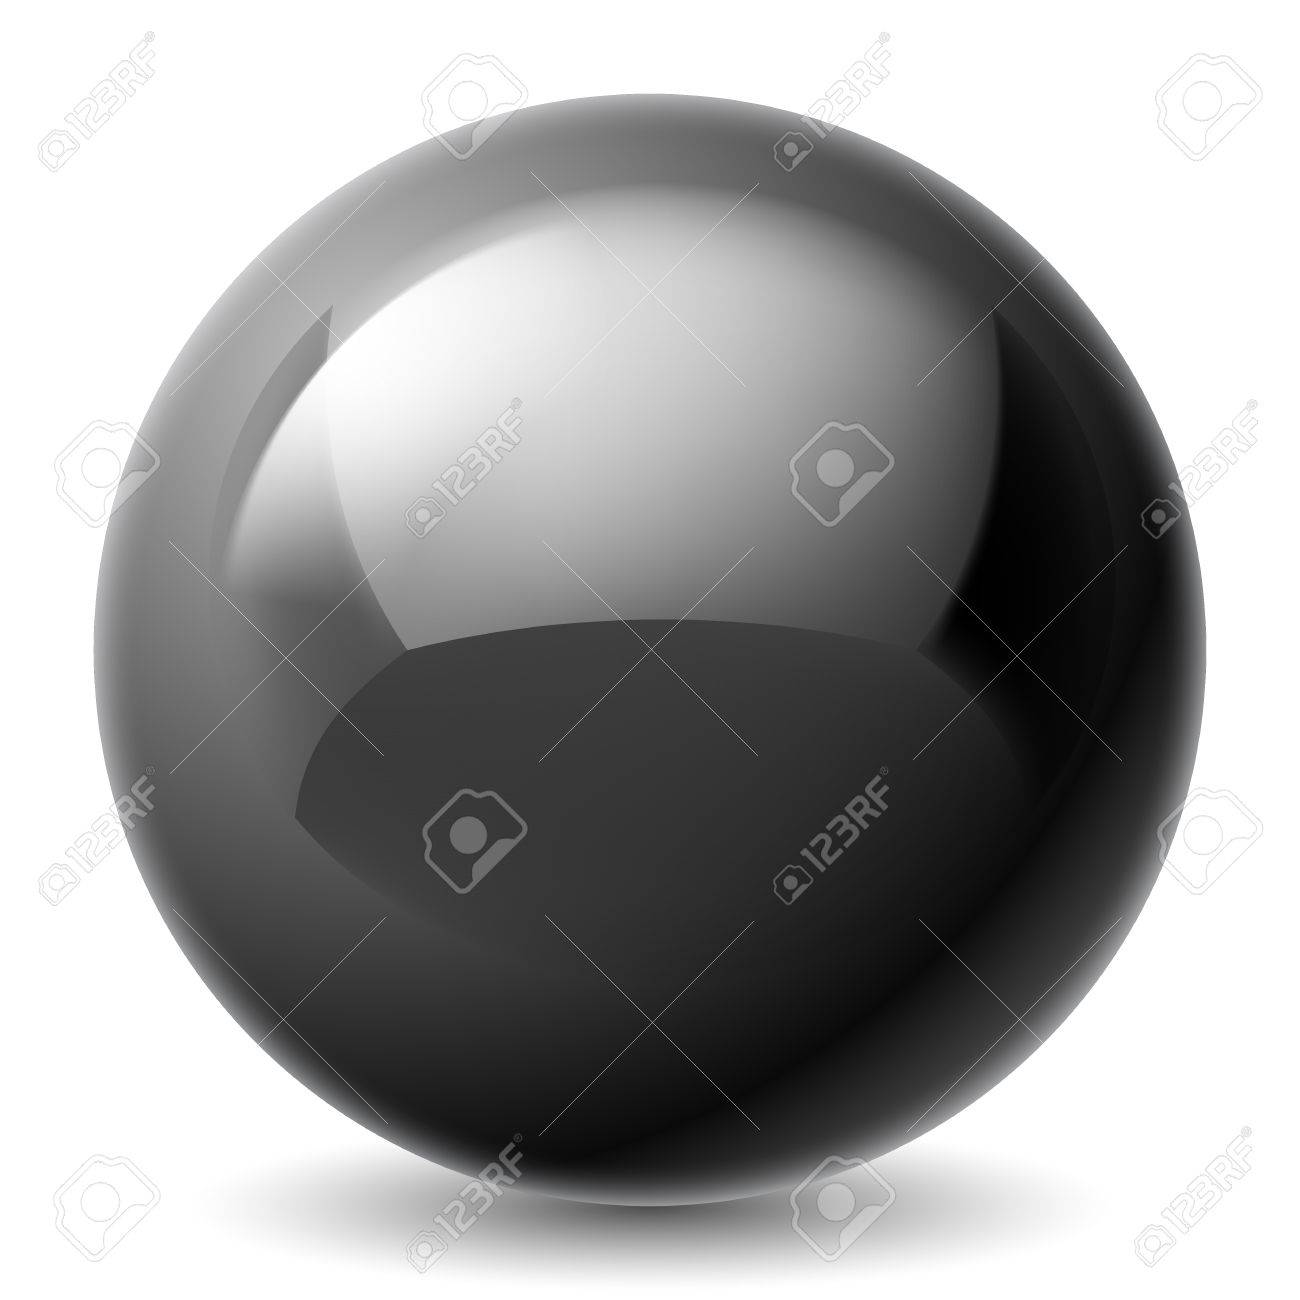 Black metallic sphere isolated on white background Stock Vector - 37433360